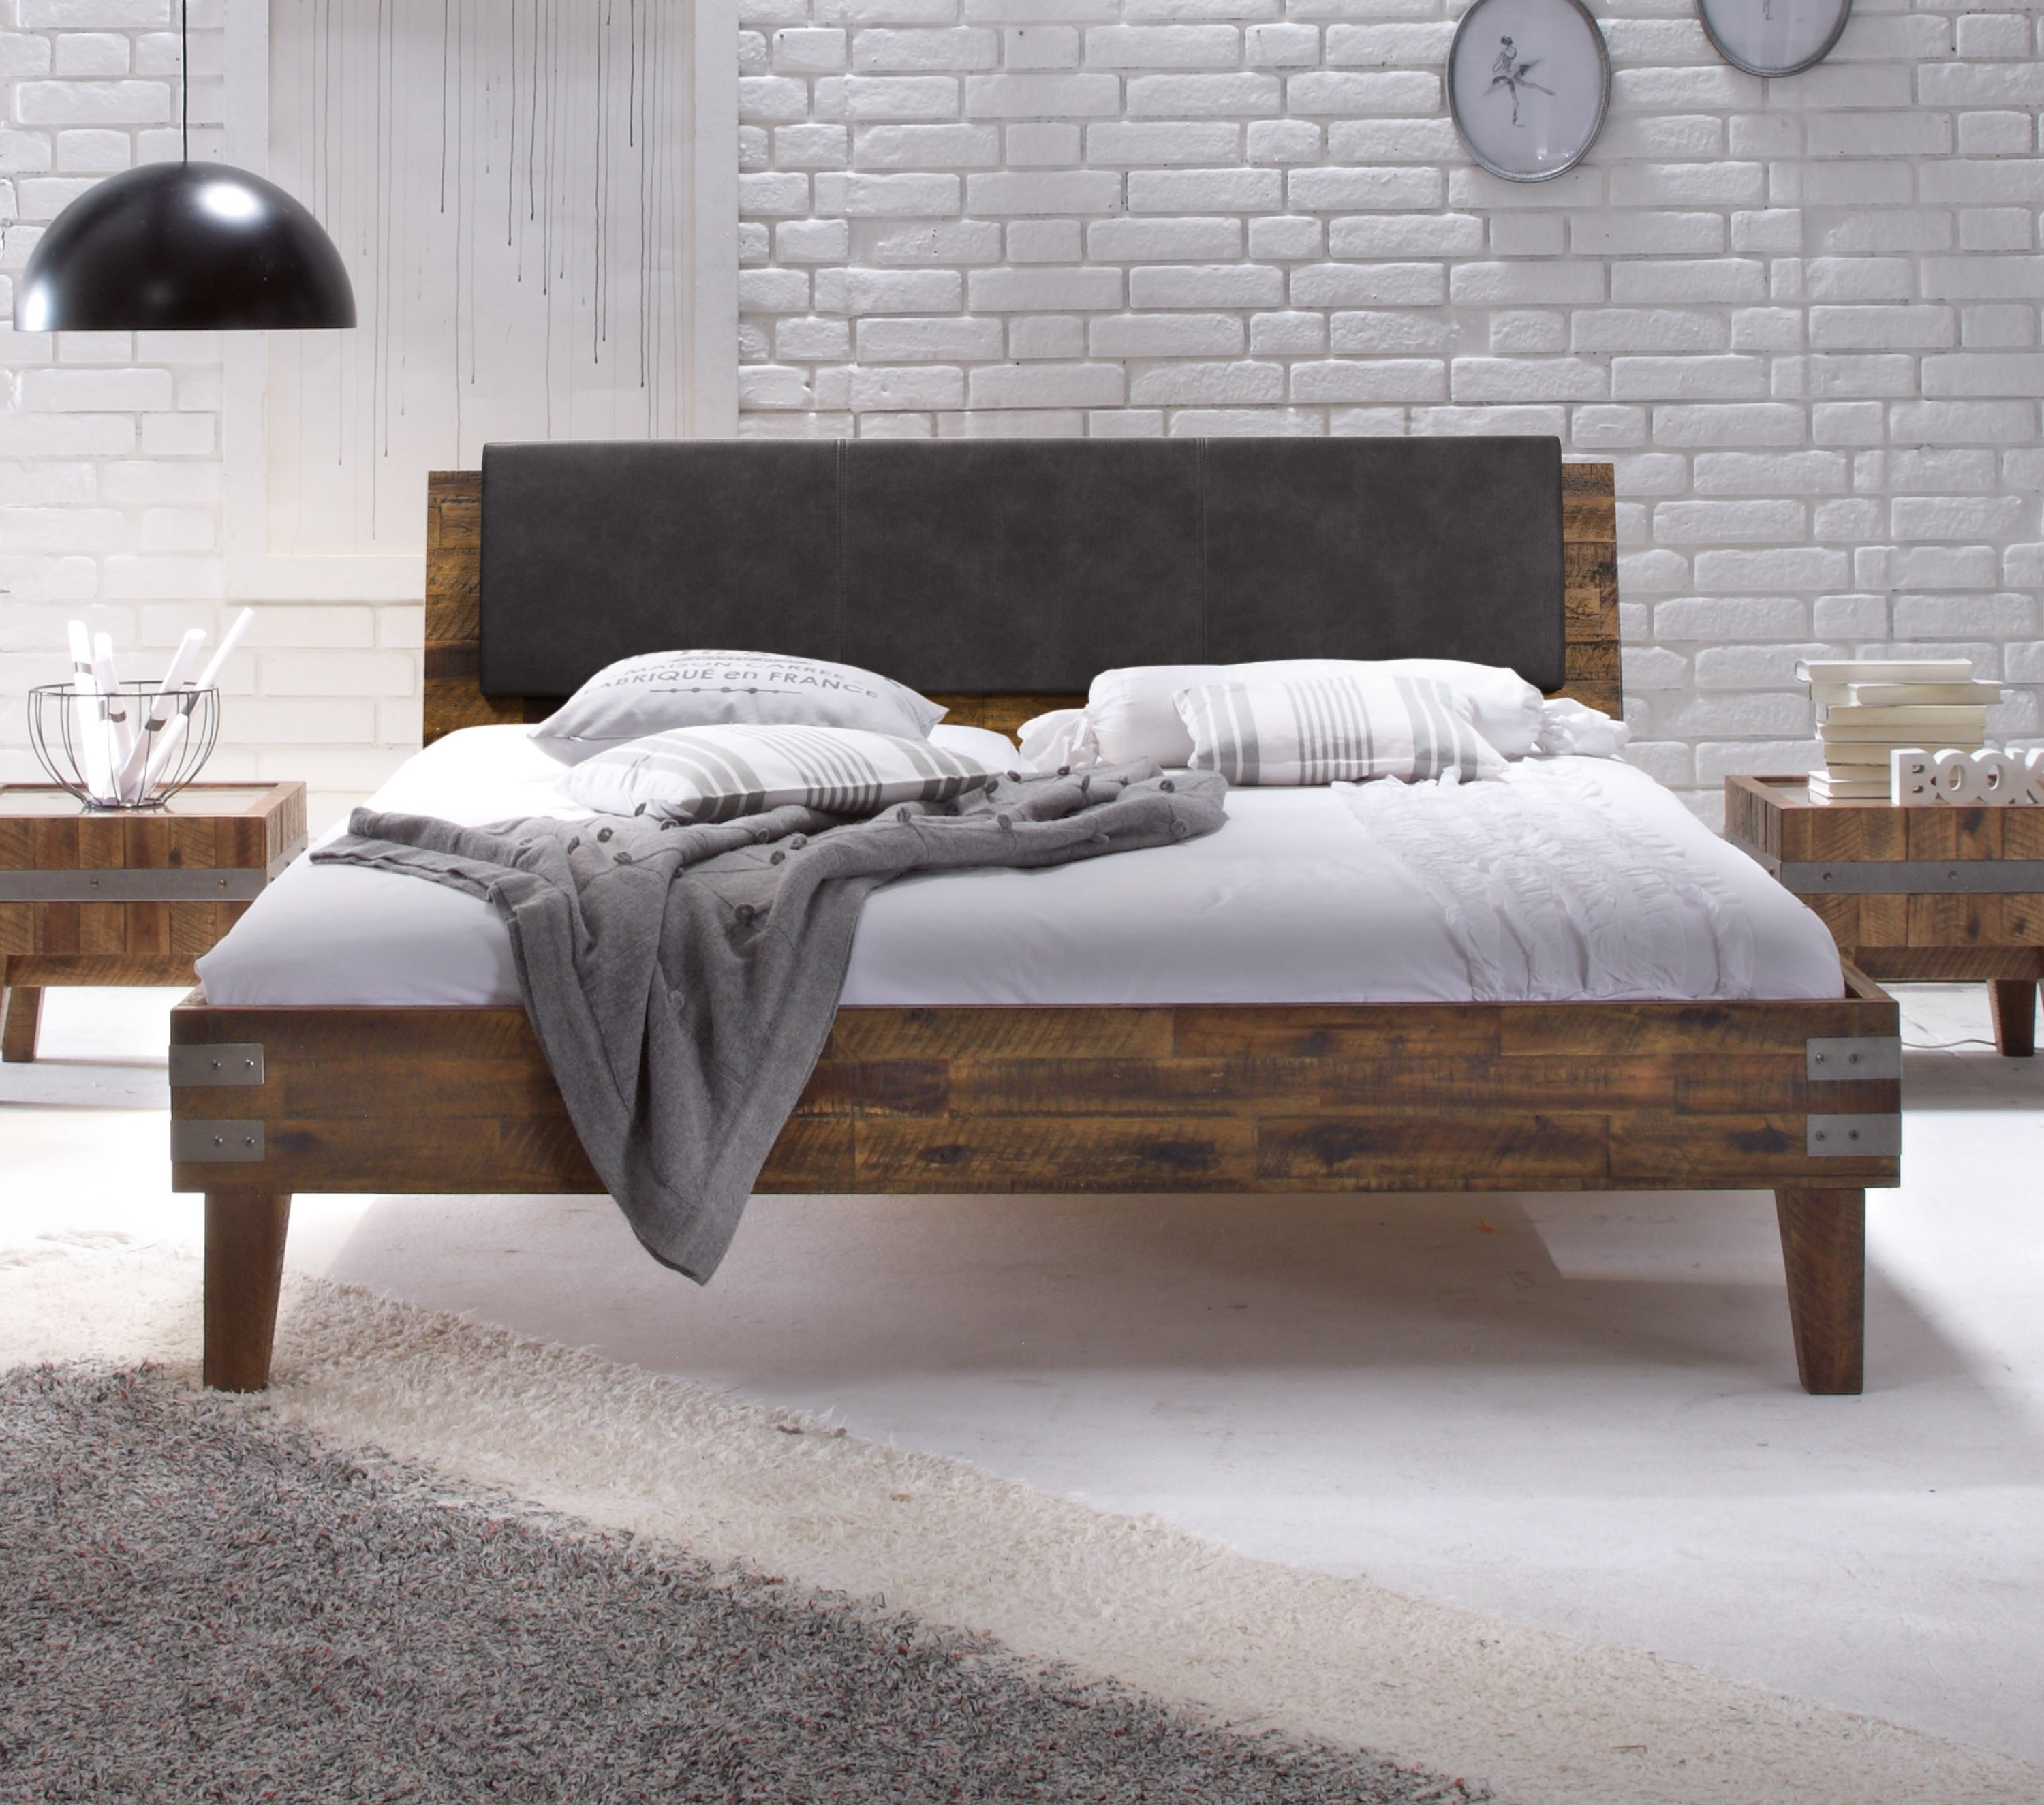 kopfteil bett polster gallery of diy betthaupt polstern with kopfteil bett polster elegant. Black Bedroom Furniture Sets. Home Design Ideas